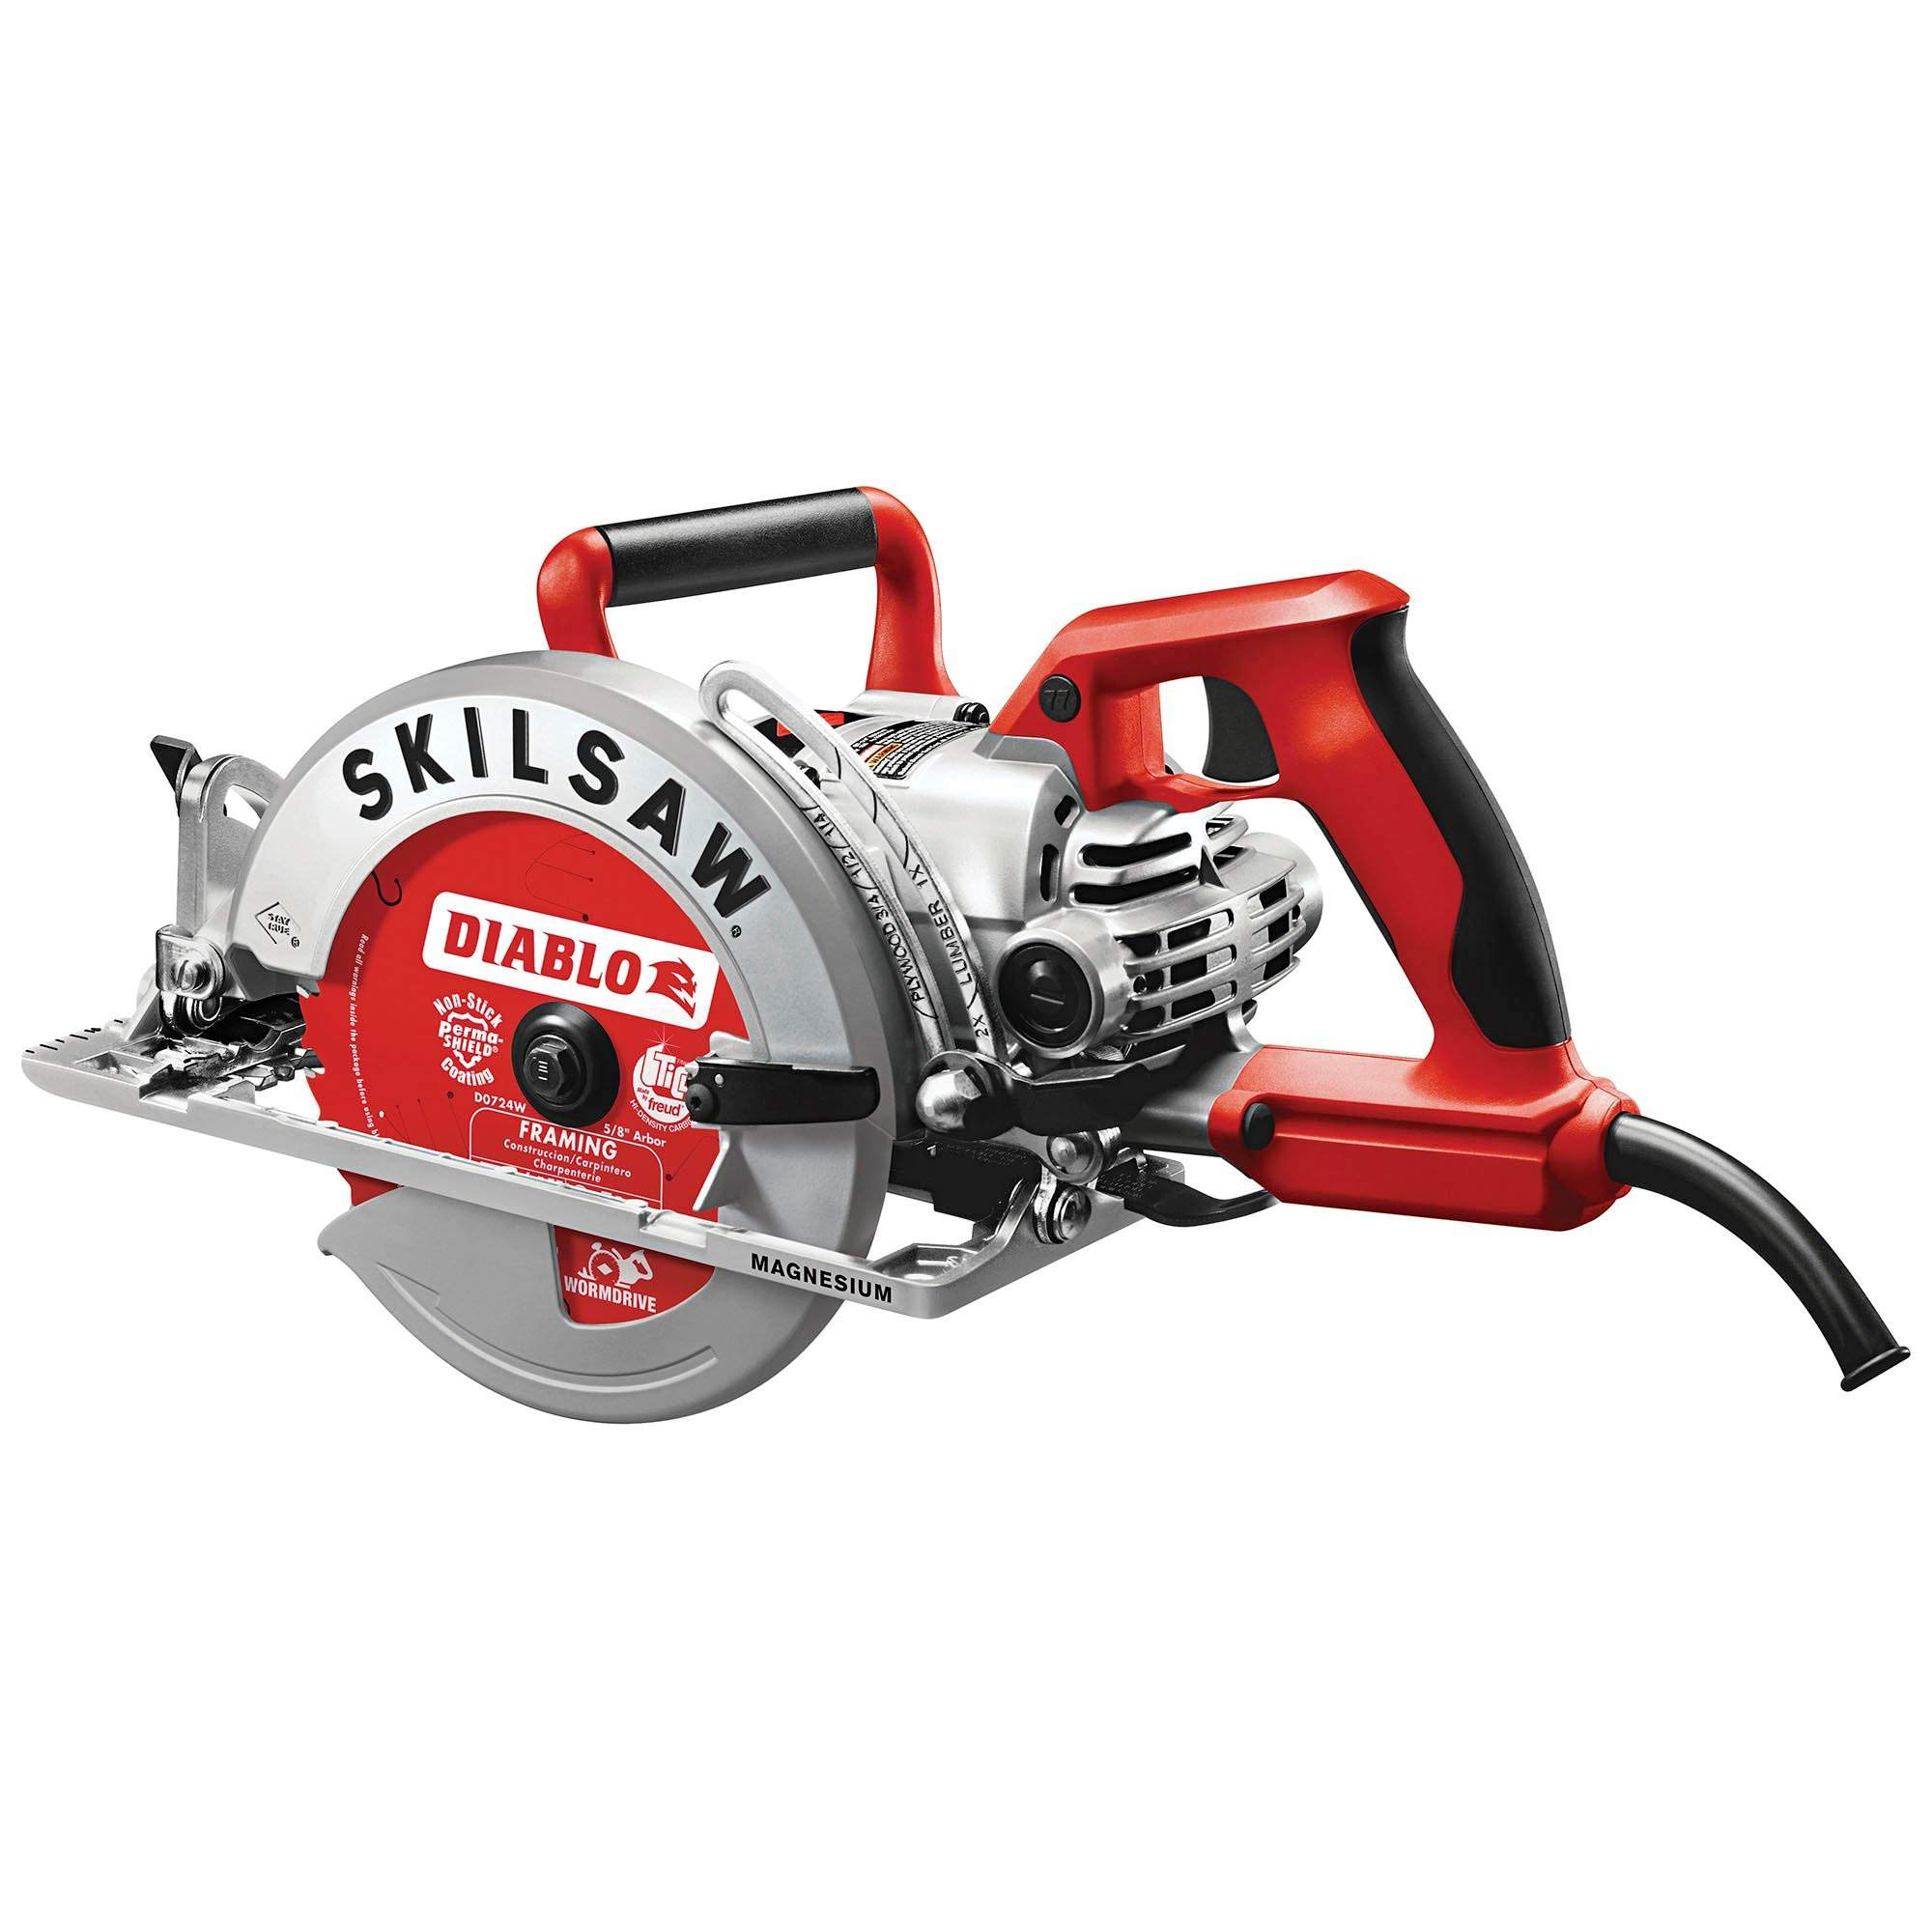 Skilsaw 7.25 Inch Corded Magnesium Worm Drive Circular Saw with Diablo Blade